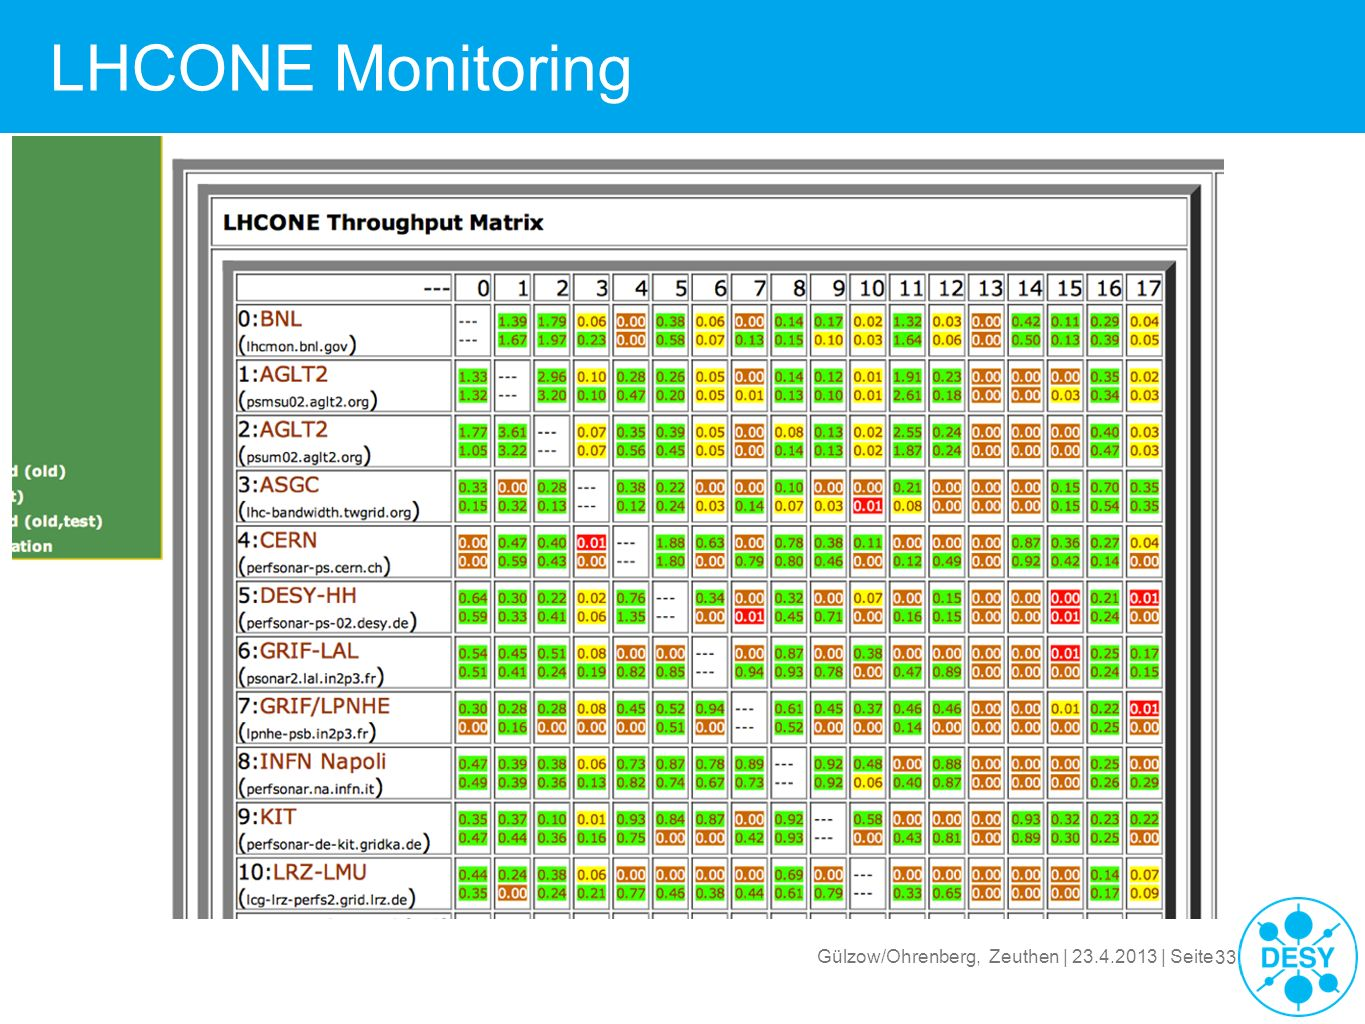 LHCONE Monitoring